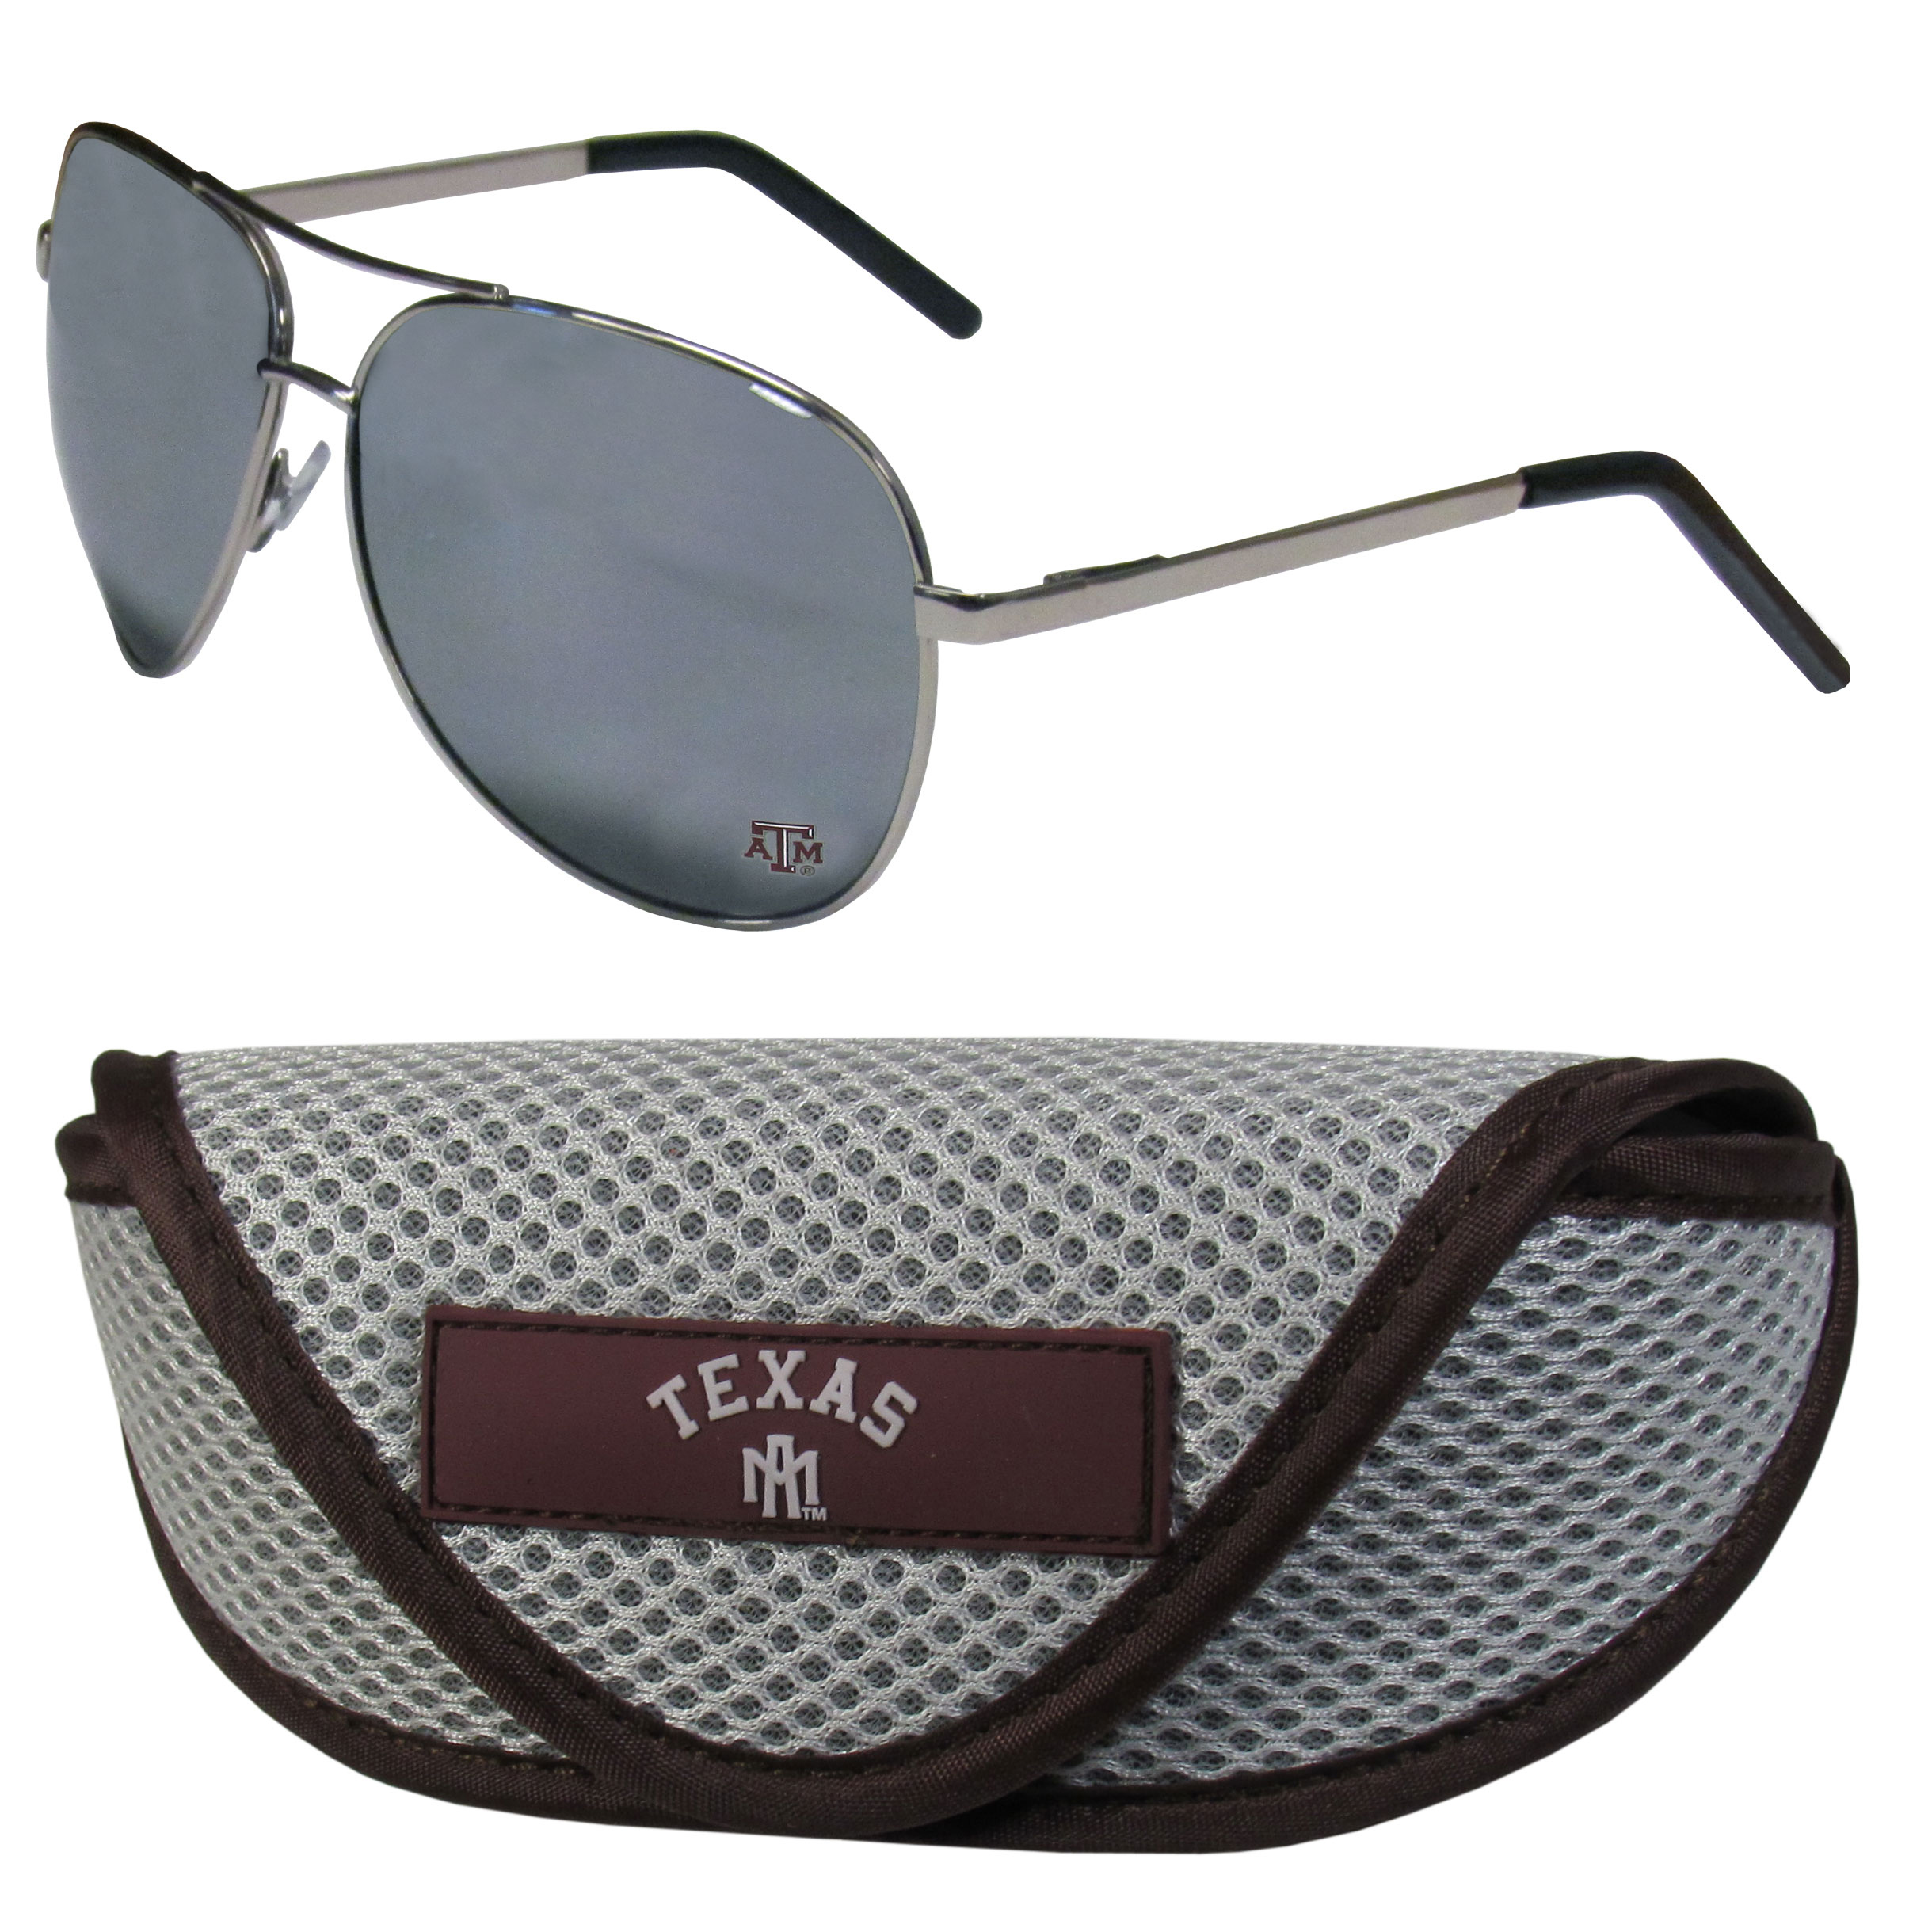 Texas A and M Aggies Aviator Sunglasses and Sports Case - Aviator sunglasses are truly an iconic retro fashion statement that never goes out-of-style. Our Texas A & M Aggies  aviator sunglasses pair this classic look with your love of the game. The iridium coated lenses reduce glare while driving, boating, golfing and their 100% UVA/UVB rating provides you with the maximum UV protection for all your outdoor activities. A millennial favorite, these affordable designer frames are the perfect eyewear accessory for a sports fan that is looking for high-quality at an affordable price. The durable, flex hinged frames are tough enough for hiking and camping or if you prefer sun bathing by the pool or on the beach these shades will really stand the test of time. The sunglasses come with a sporty case which has a large team logo on the lid that will make even the most die-hard fan proud!